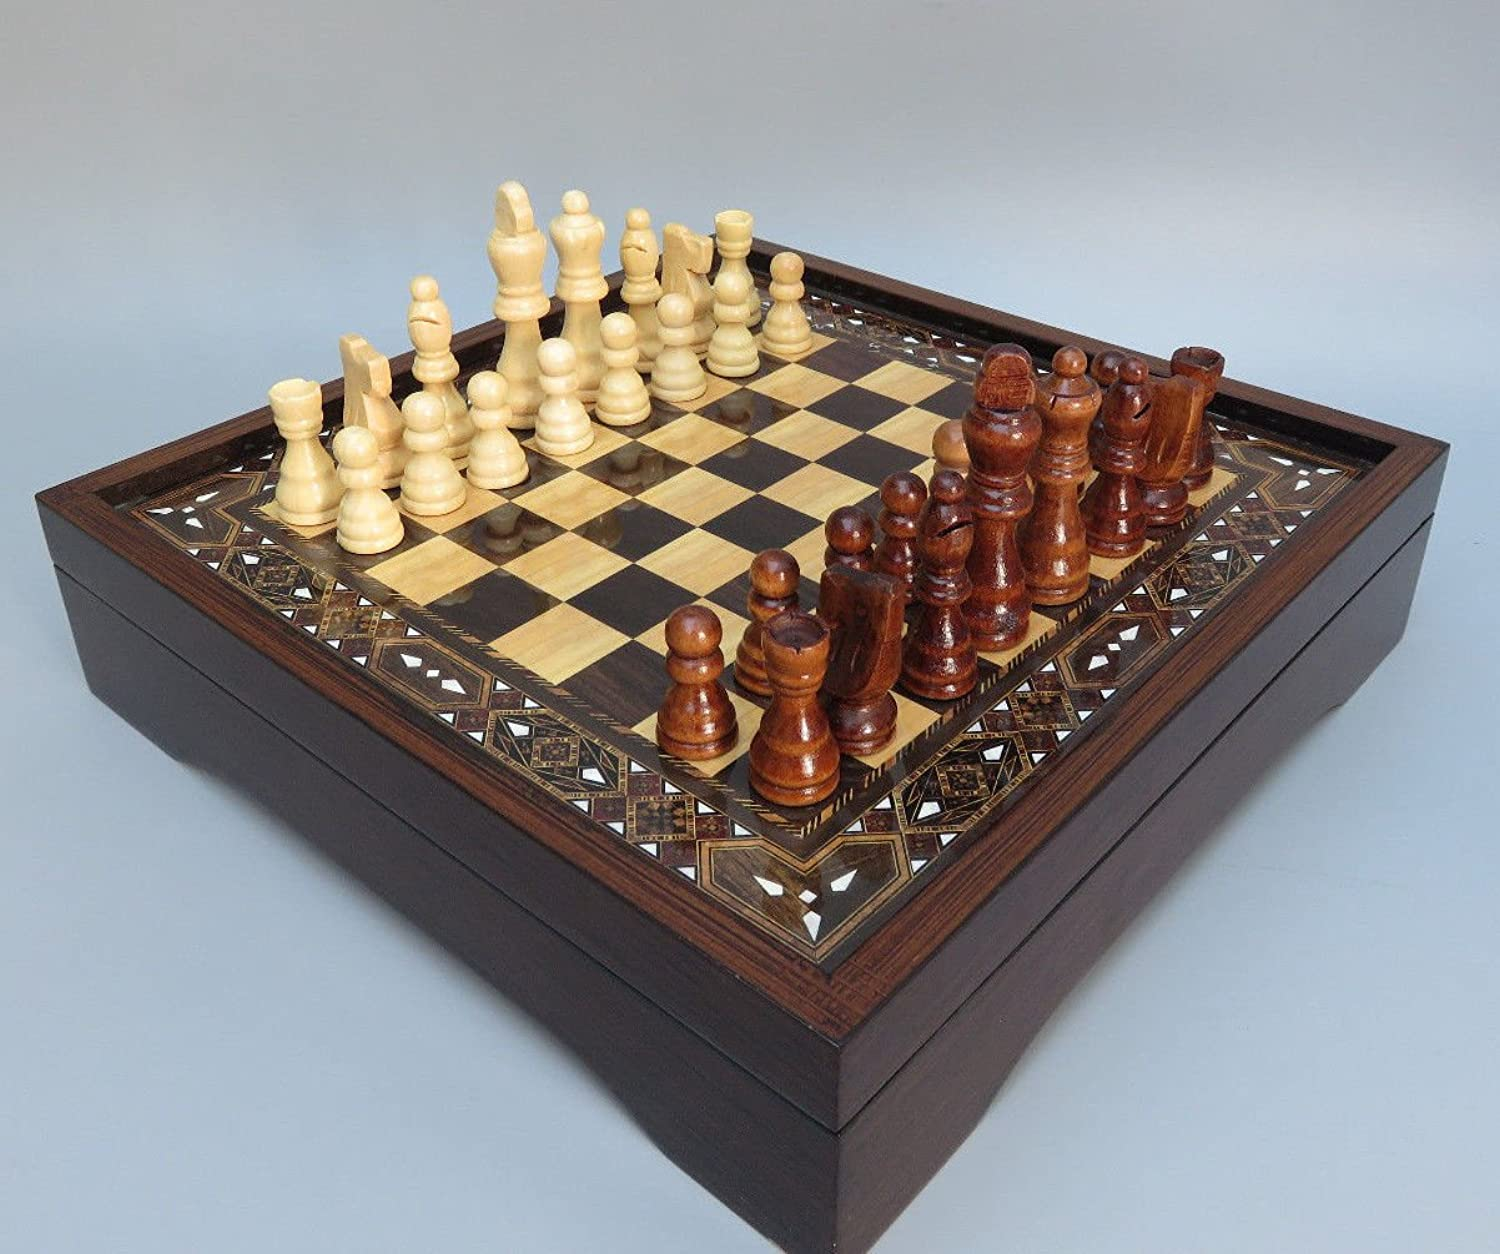 Chessgammon CHESS SET WOODEN CHESS SET BOARD GAME STAR WALNUT STYLE WITH CHESS PIECES